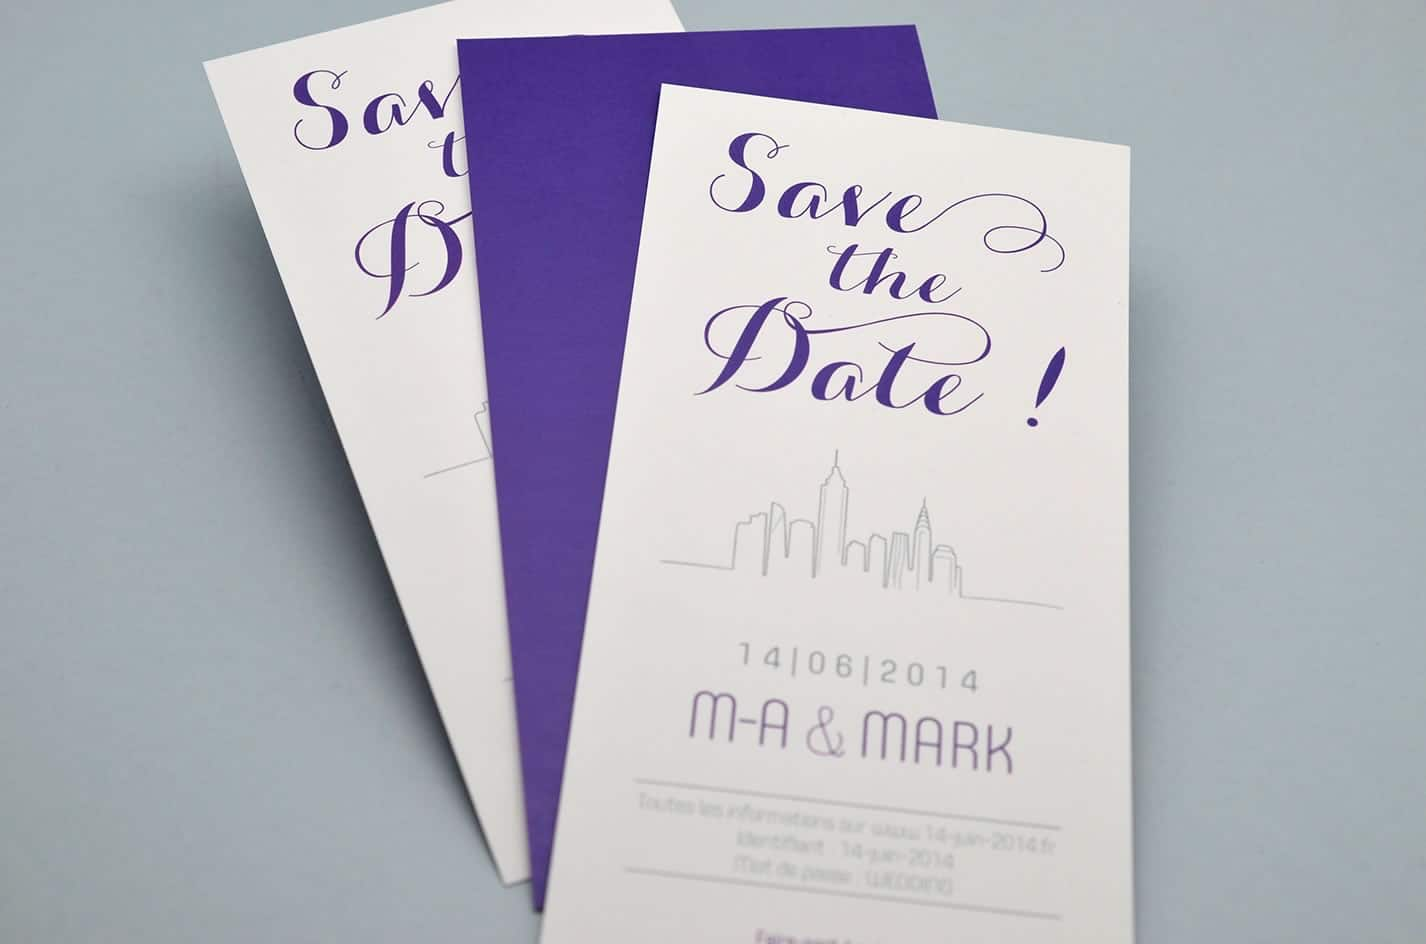 Save the date mariage sur mesure new york design violet skyline voyage latelierdelsa